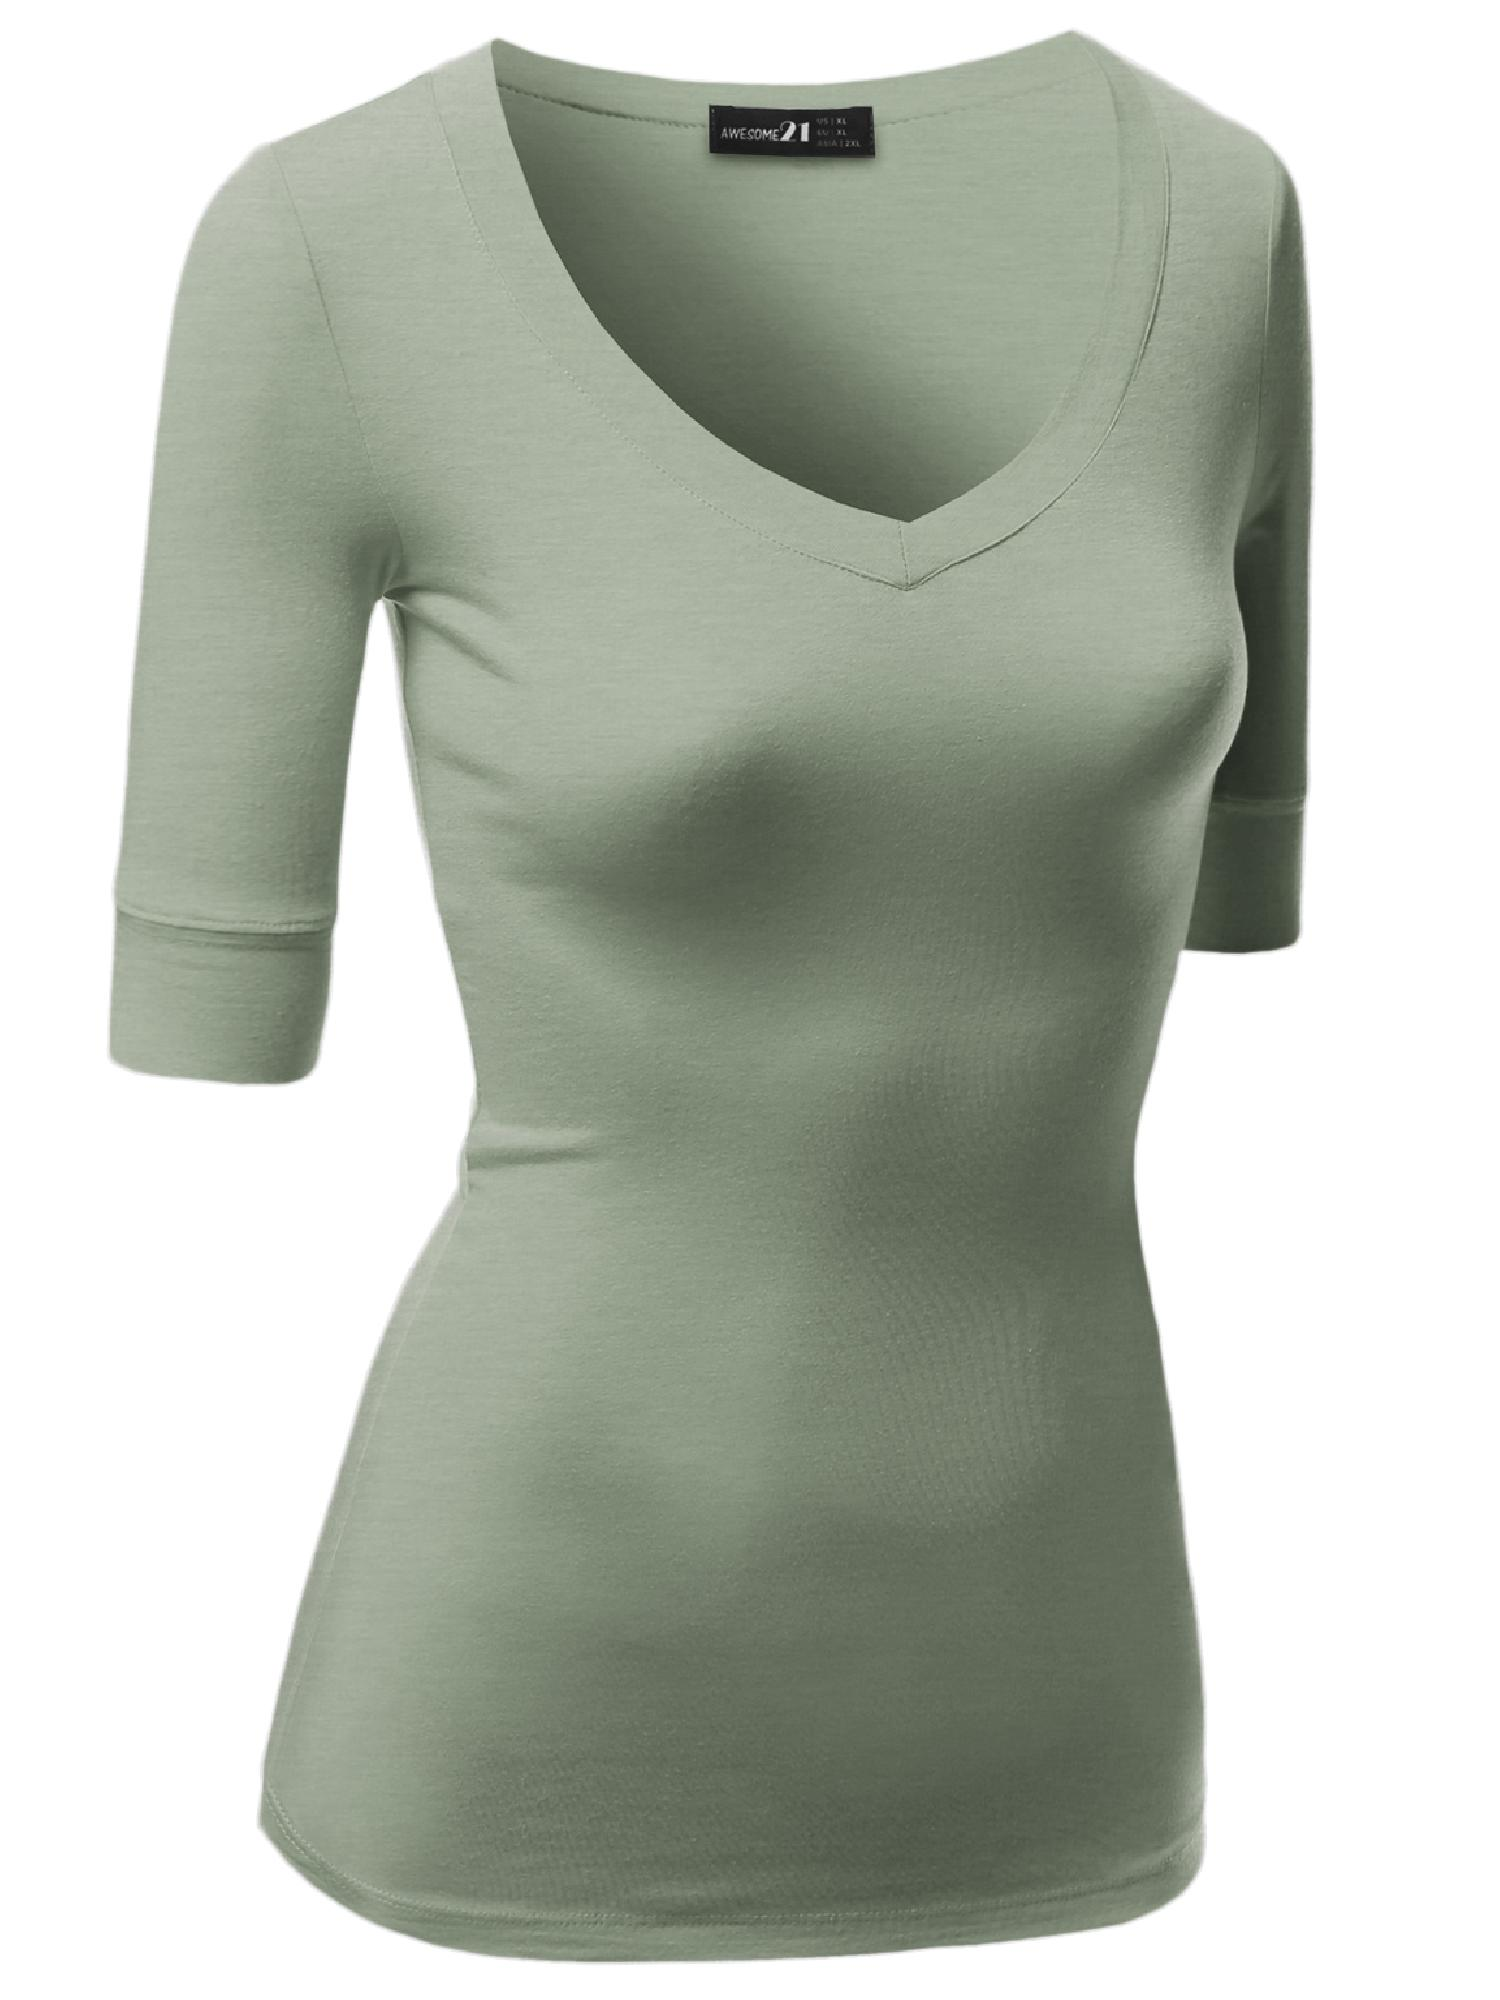 FashionOutfit Women's Basic Solid Arm Sleeve V Neck T-shirt Tops